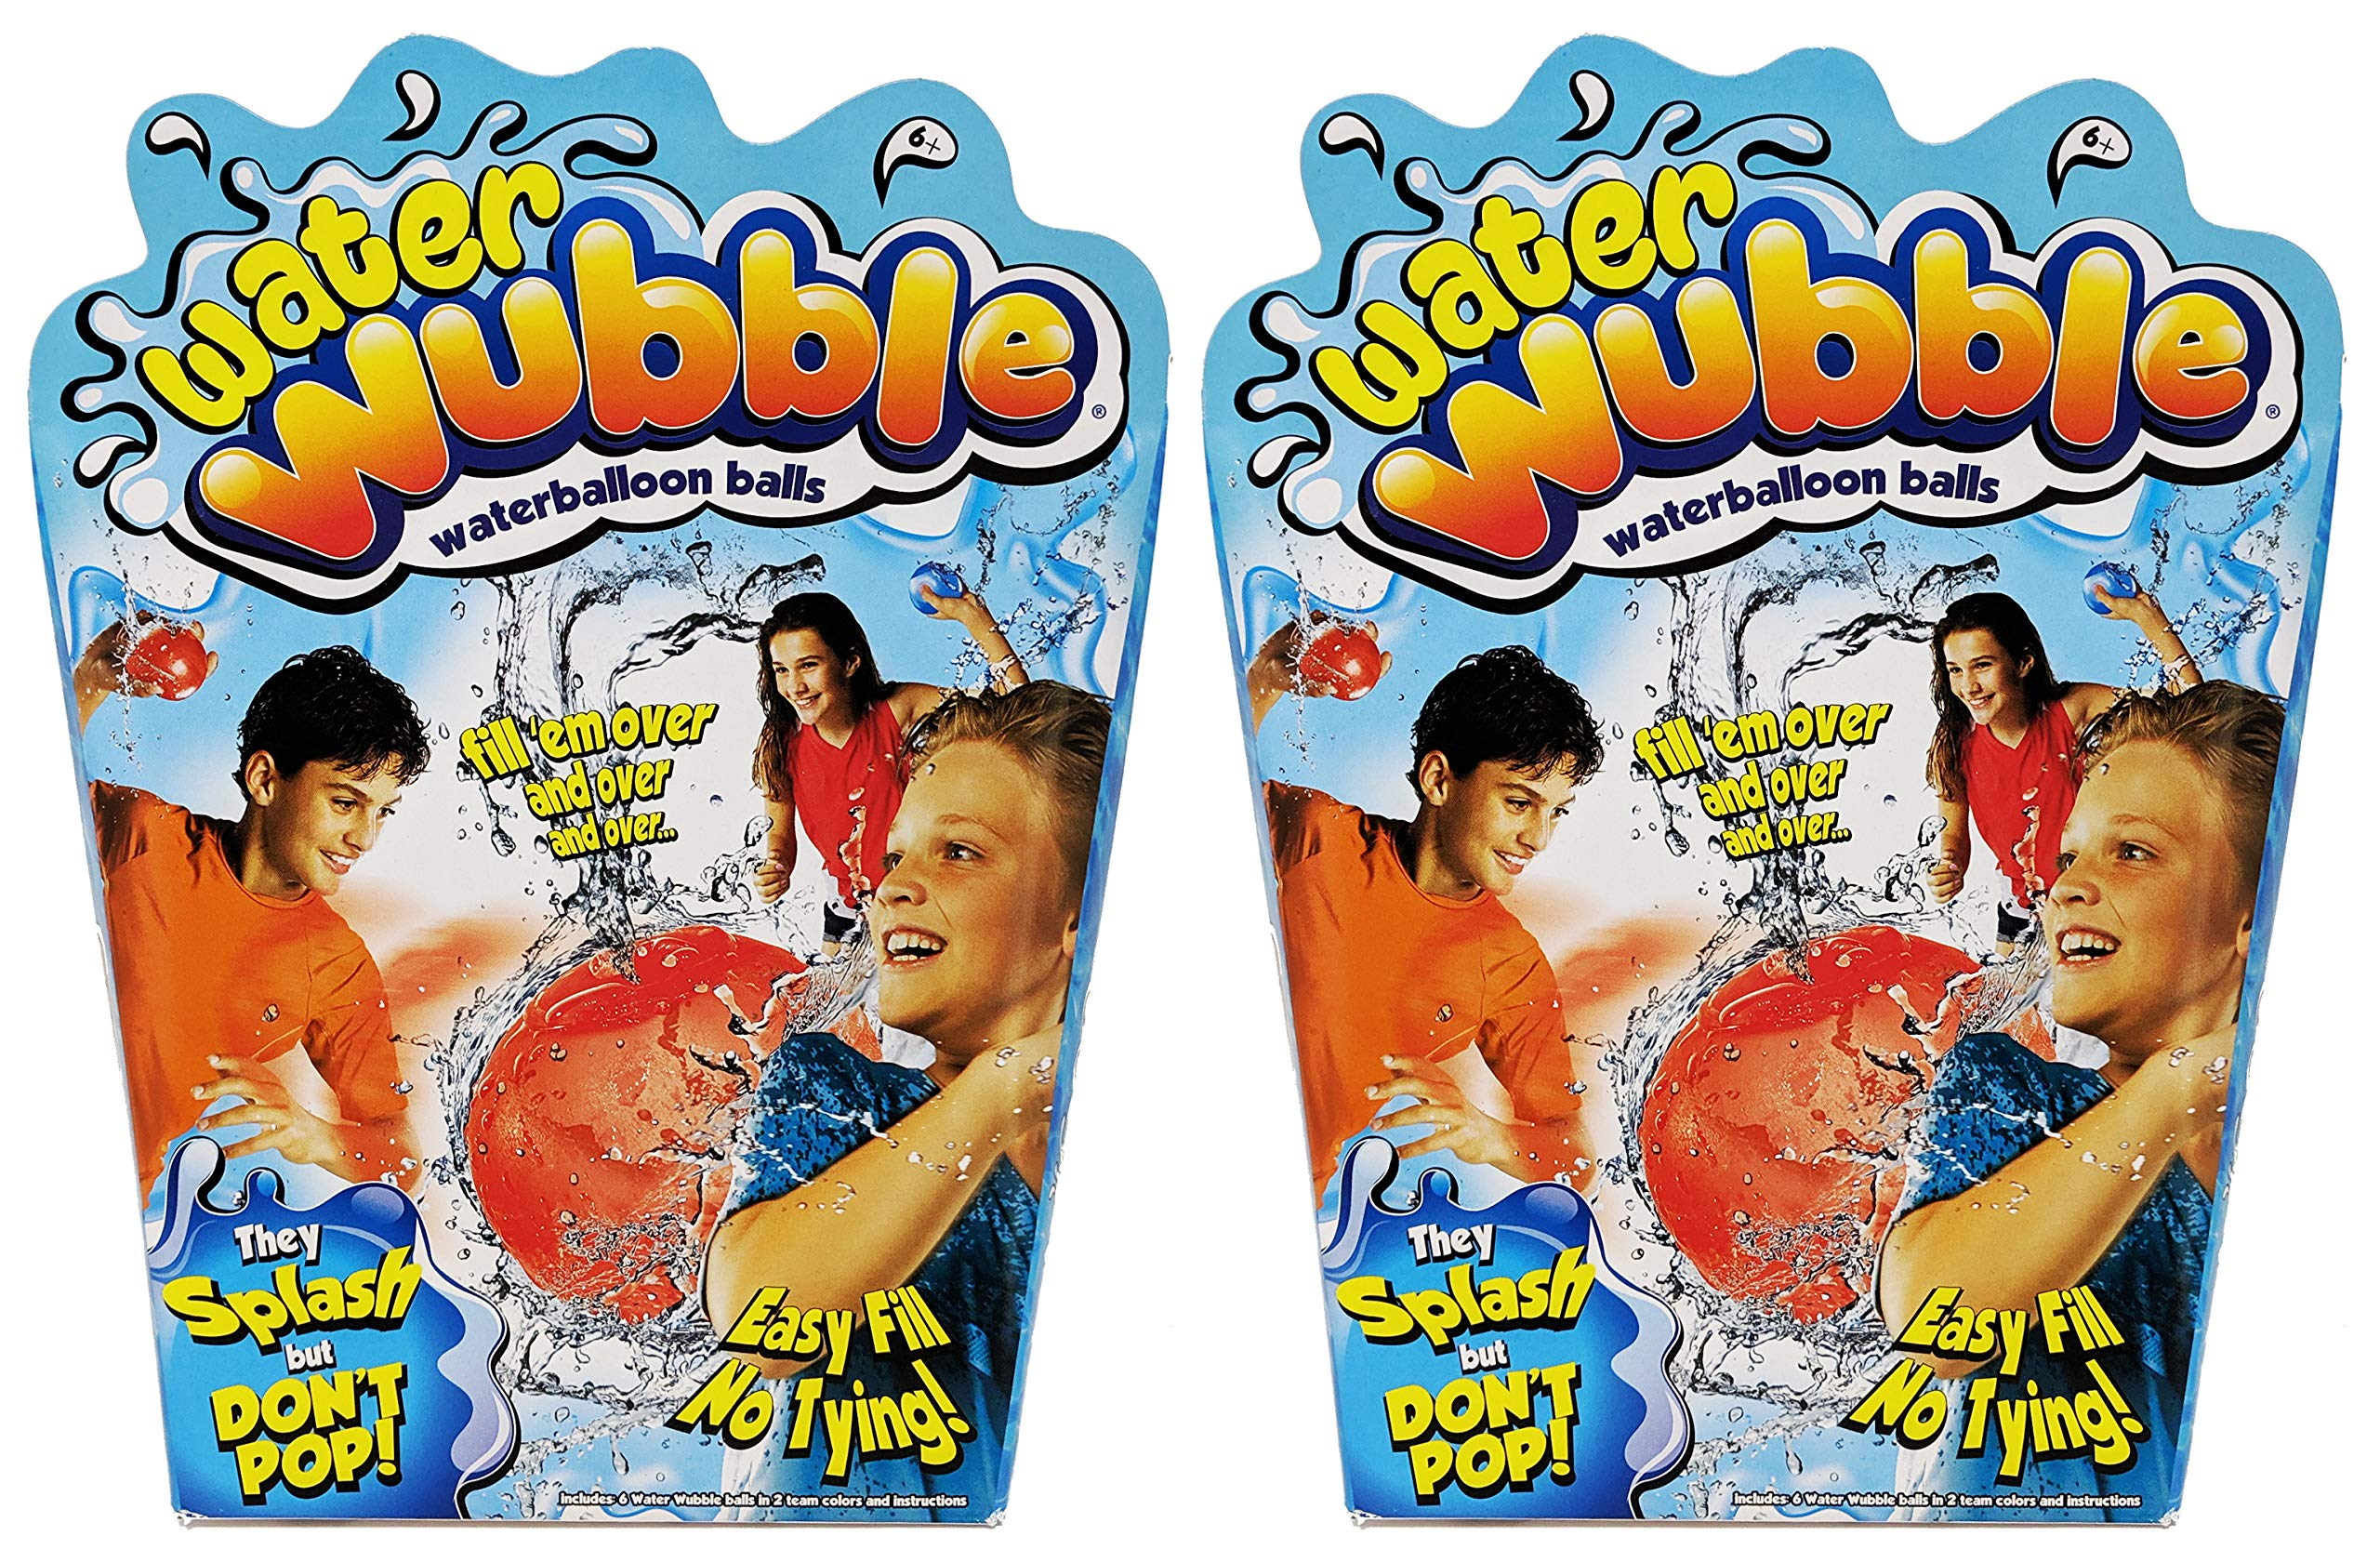 Water Wubble 12 Pack Refillable Water Balloon Balls by Water Wubble